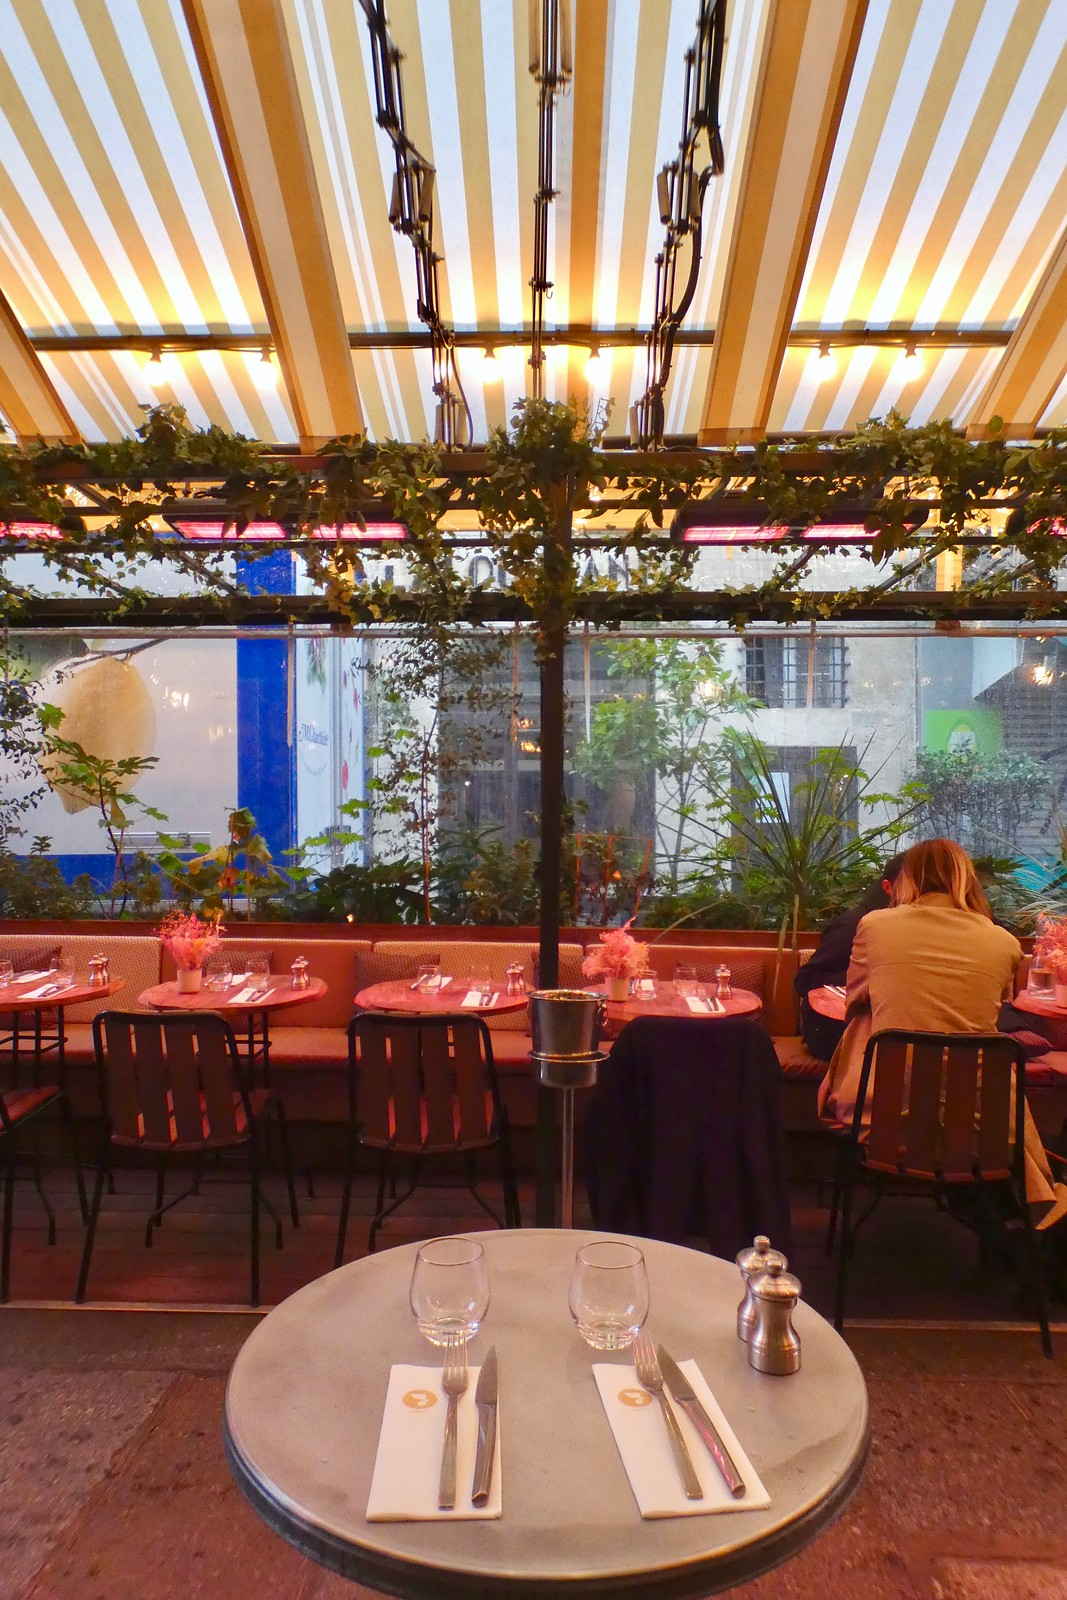 Restaurant Gilberte, Paris